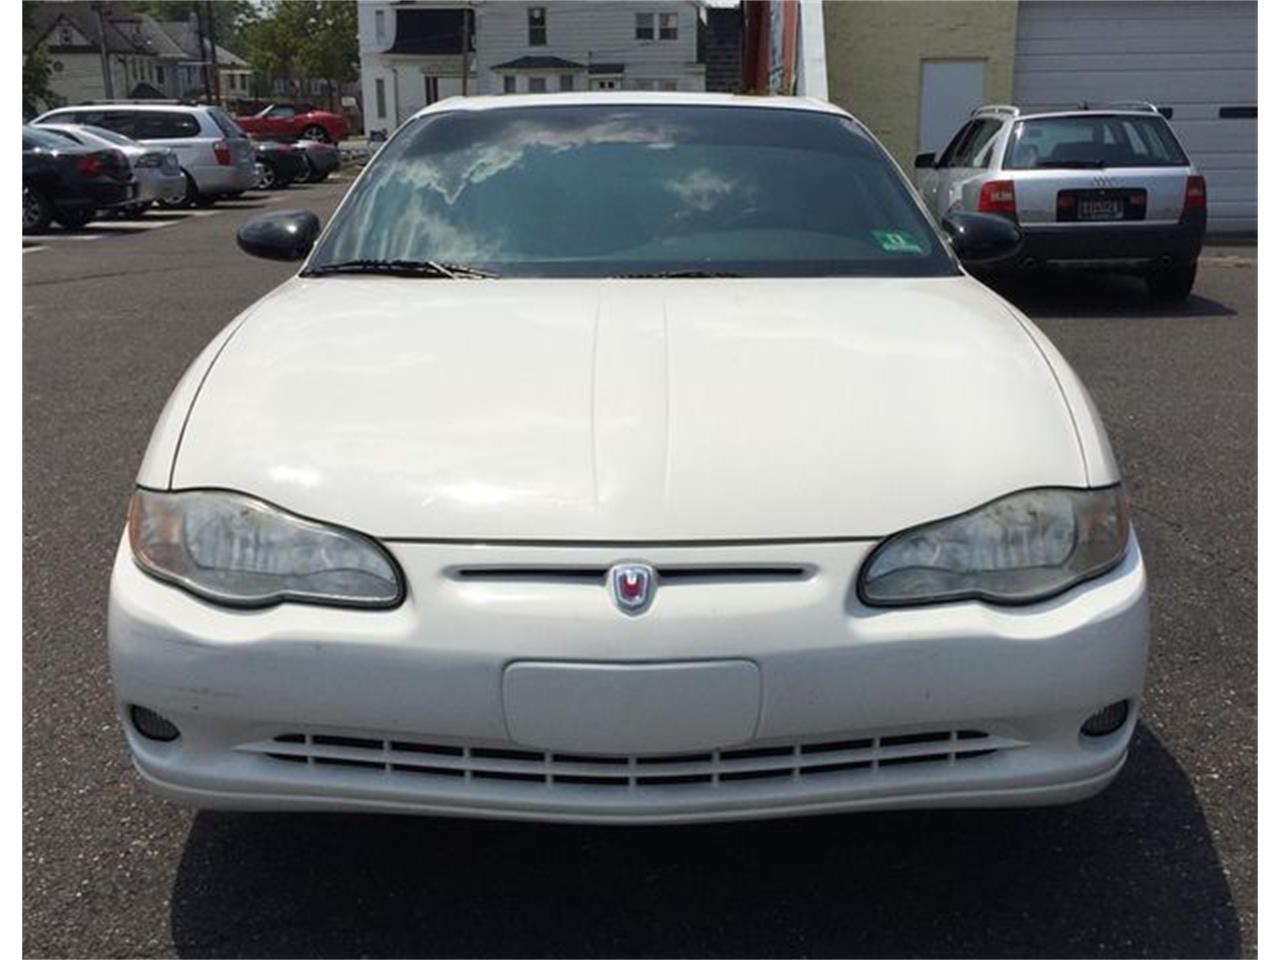 2005 Chevrolet Monte Carlo for sale in Woodbury, NJ – photo 3